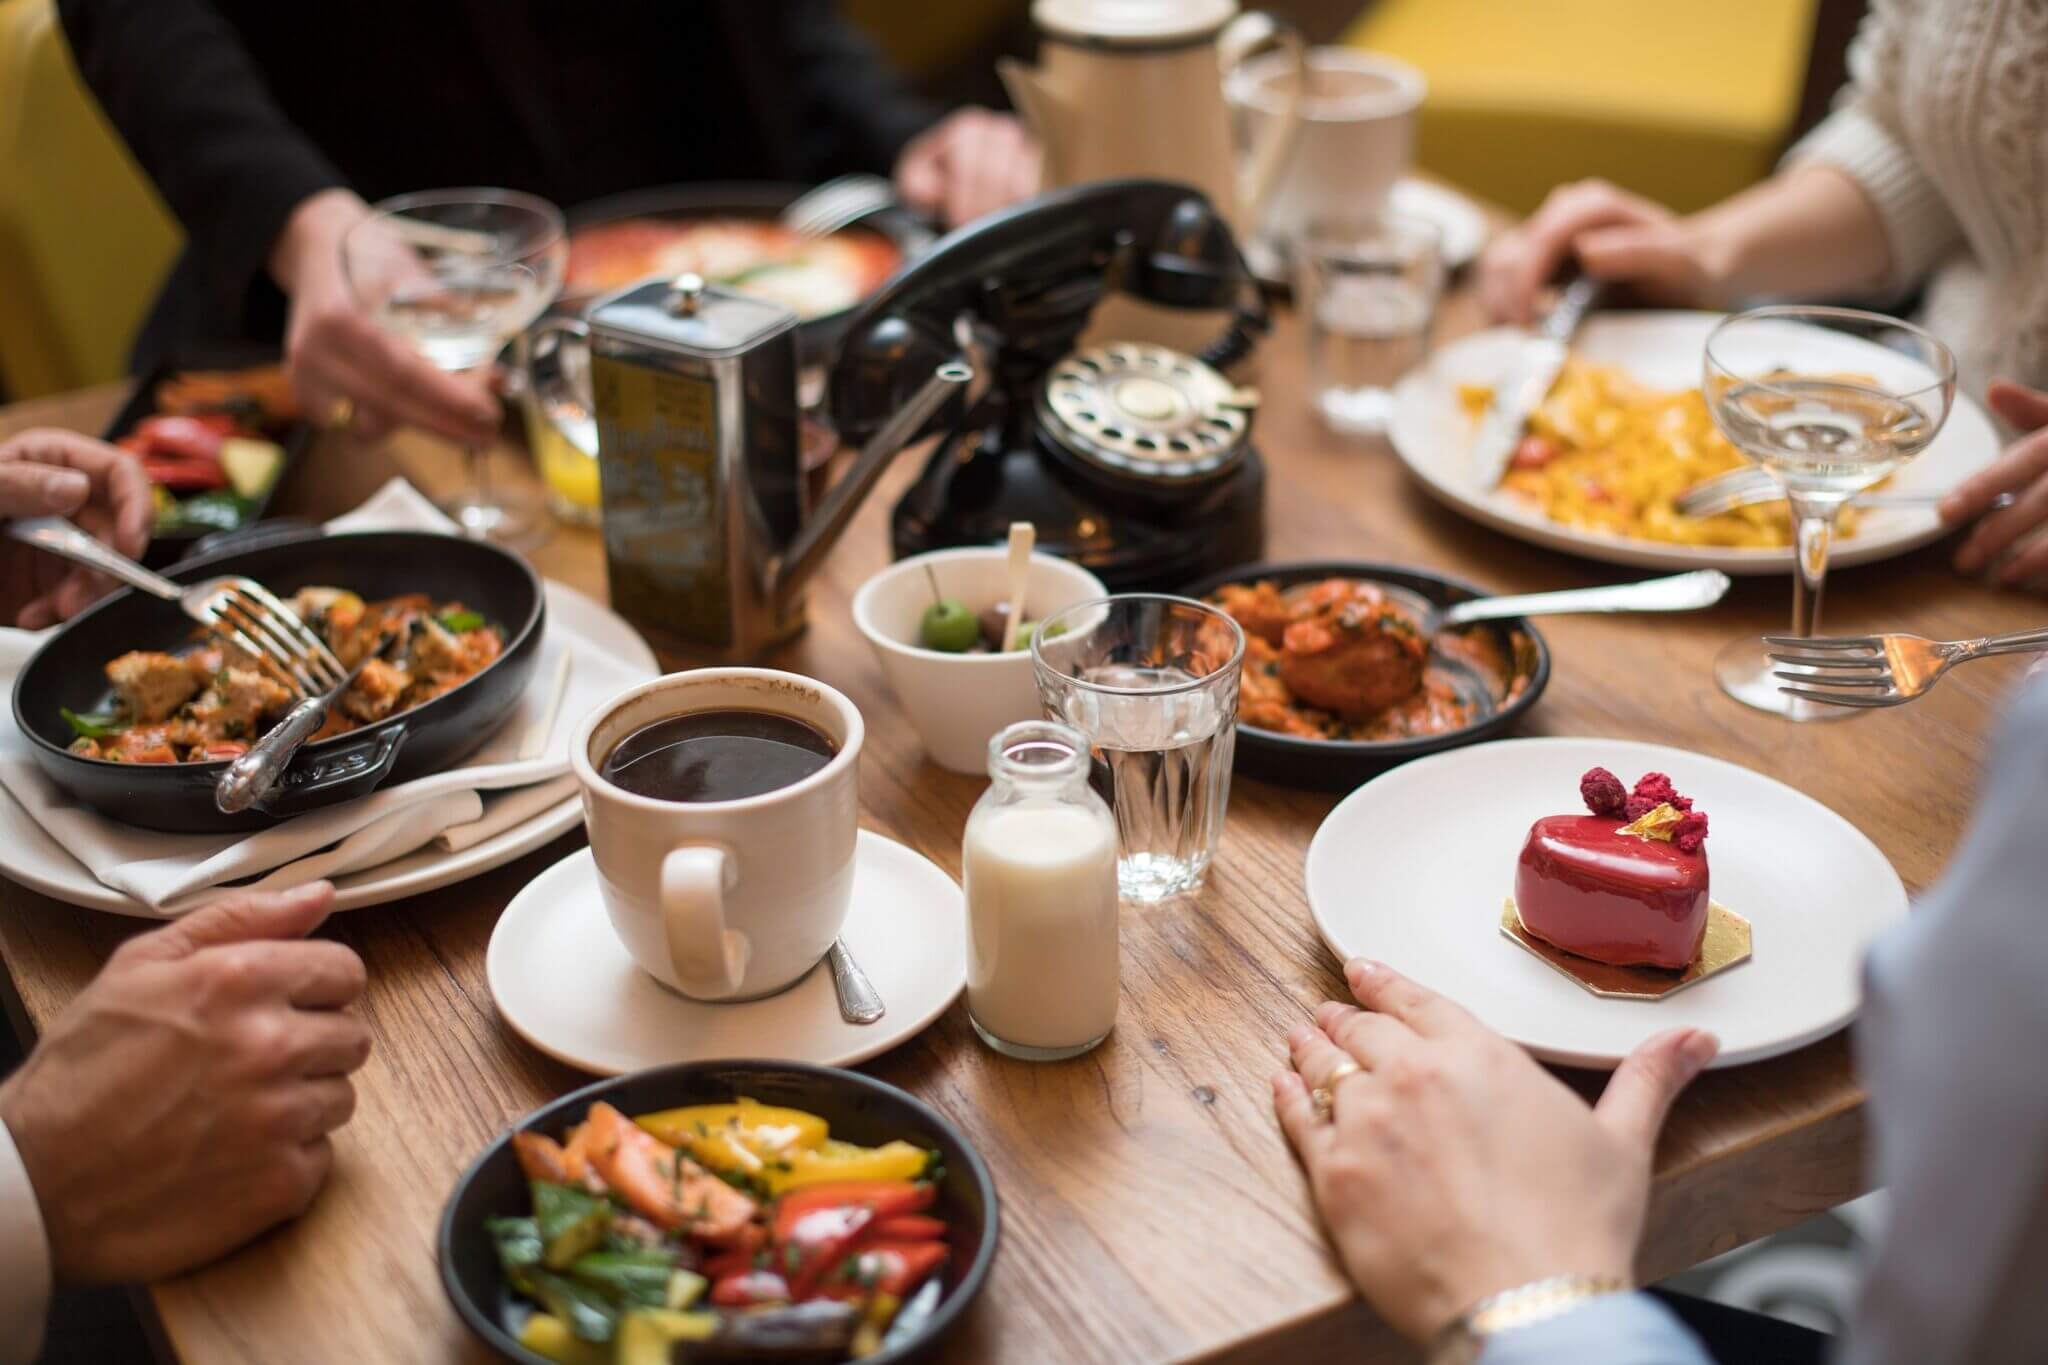 mother's day ideas in London, Mother's Day Ideas in London 2017, Mother's Day in London, Mother's Day in London 2017, mother's day restaurants in London